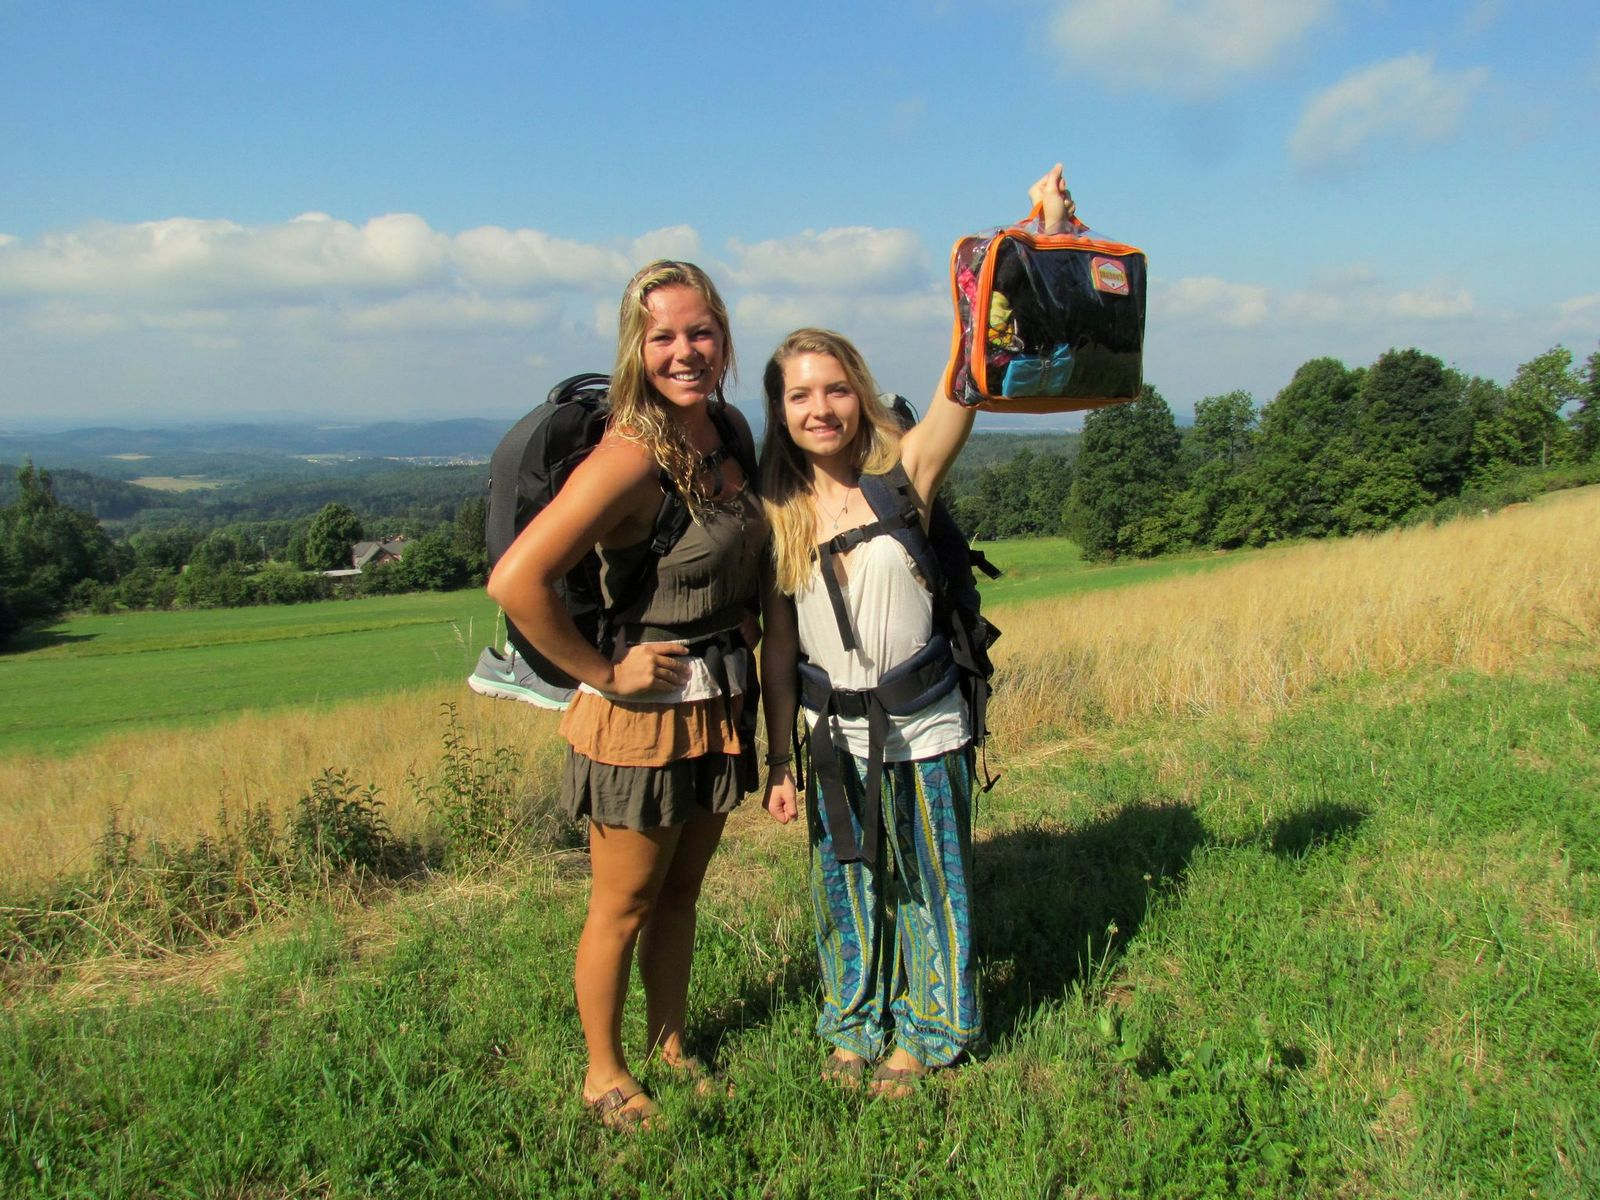 two ladies on a hiking trip with a large orange cube